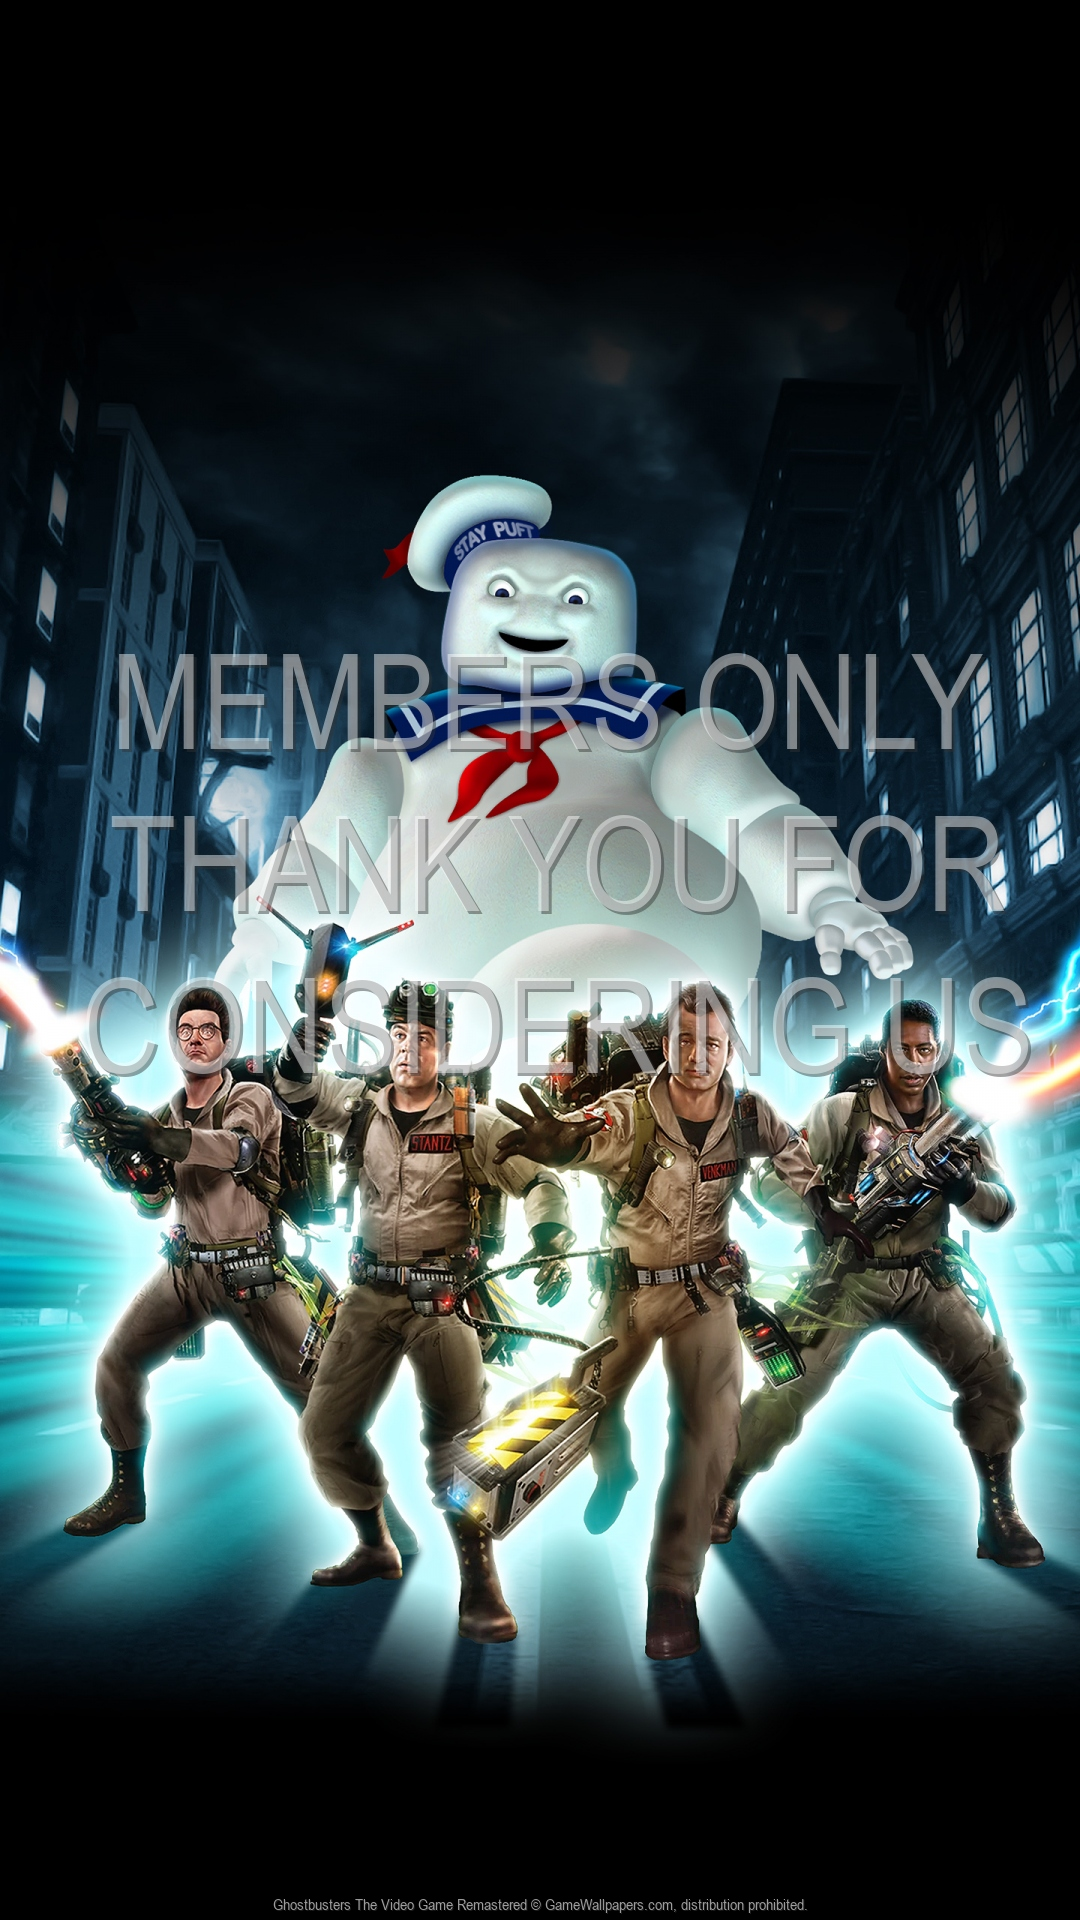 Ghostbusters: The Video Game Remastered 1920x1080 Mobile fond d'écran 01